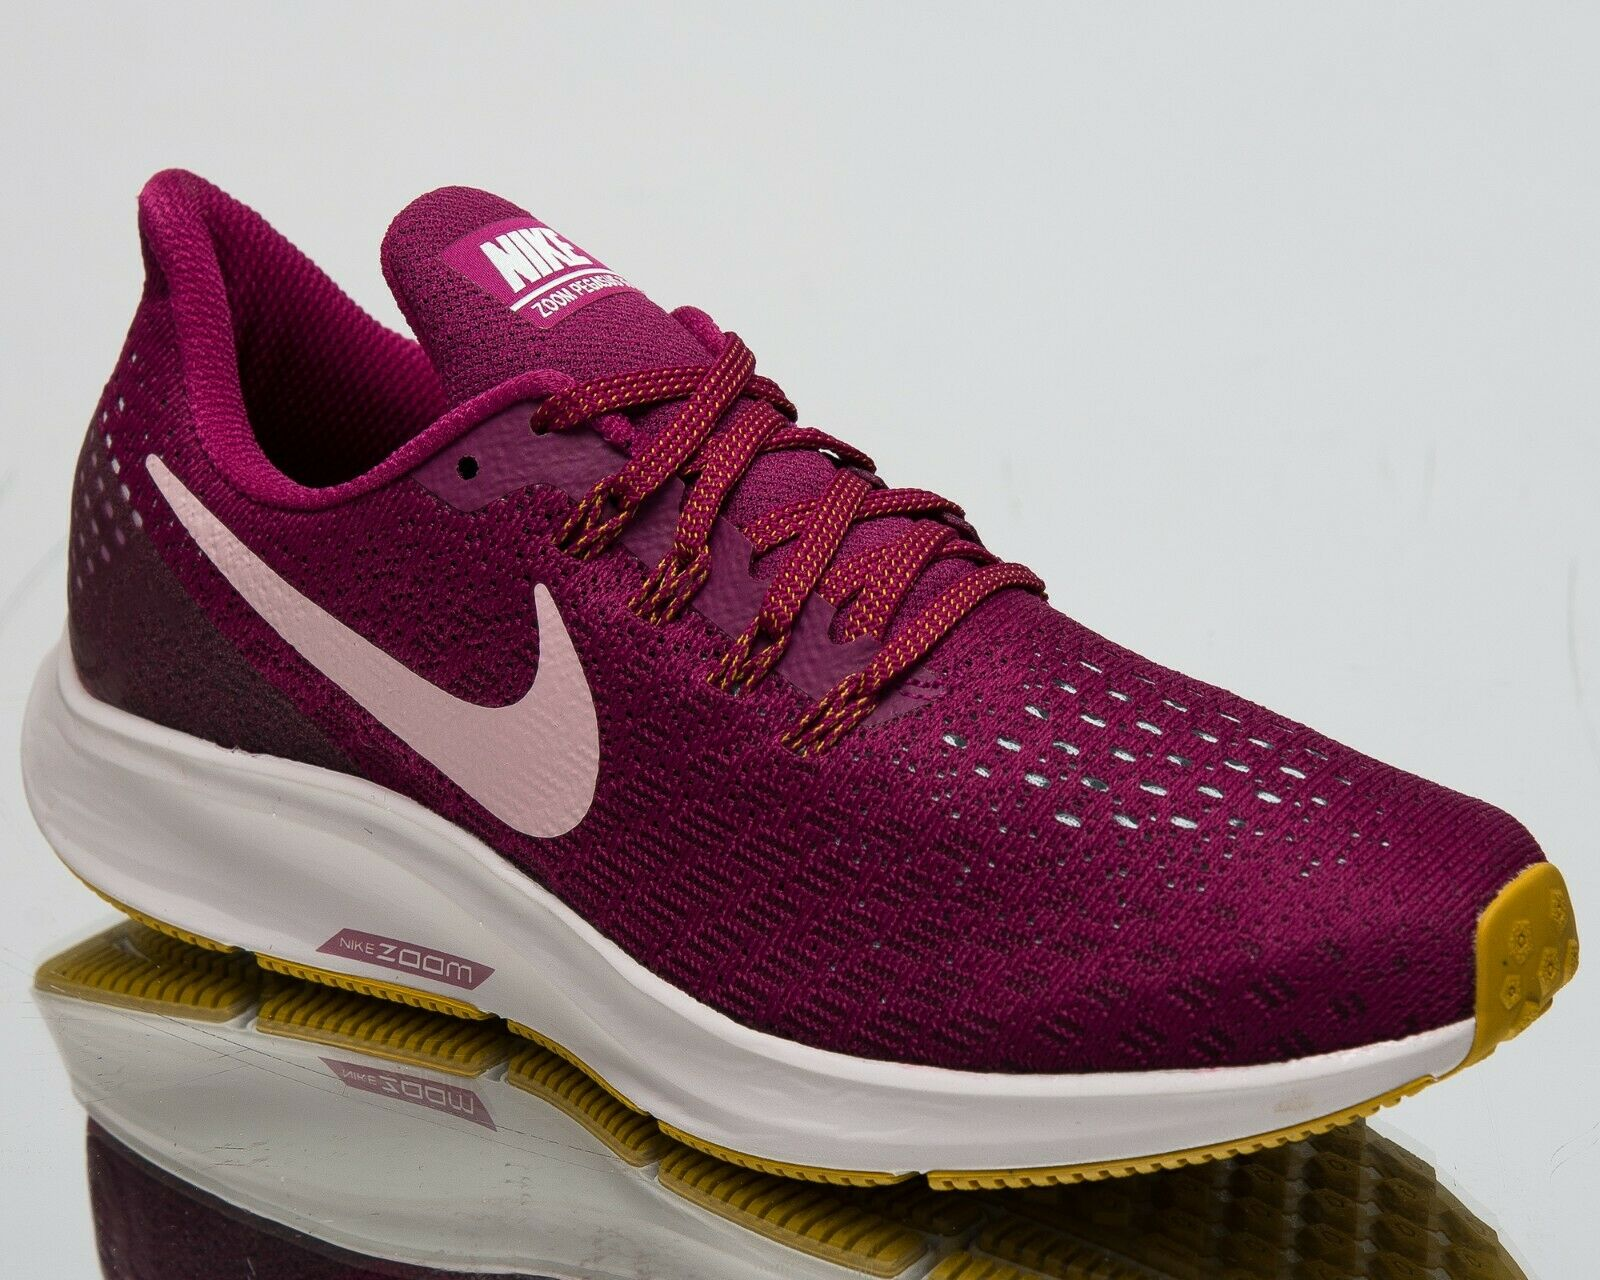 Nike Donna  Air Zoom Pegasus 35 New New New Running scarpe True Berry Plum 942855-606 cc78a9